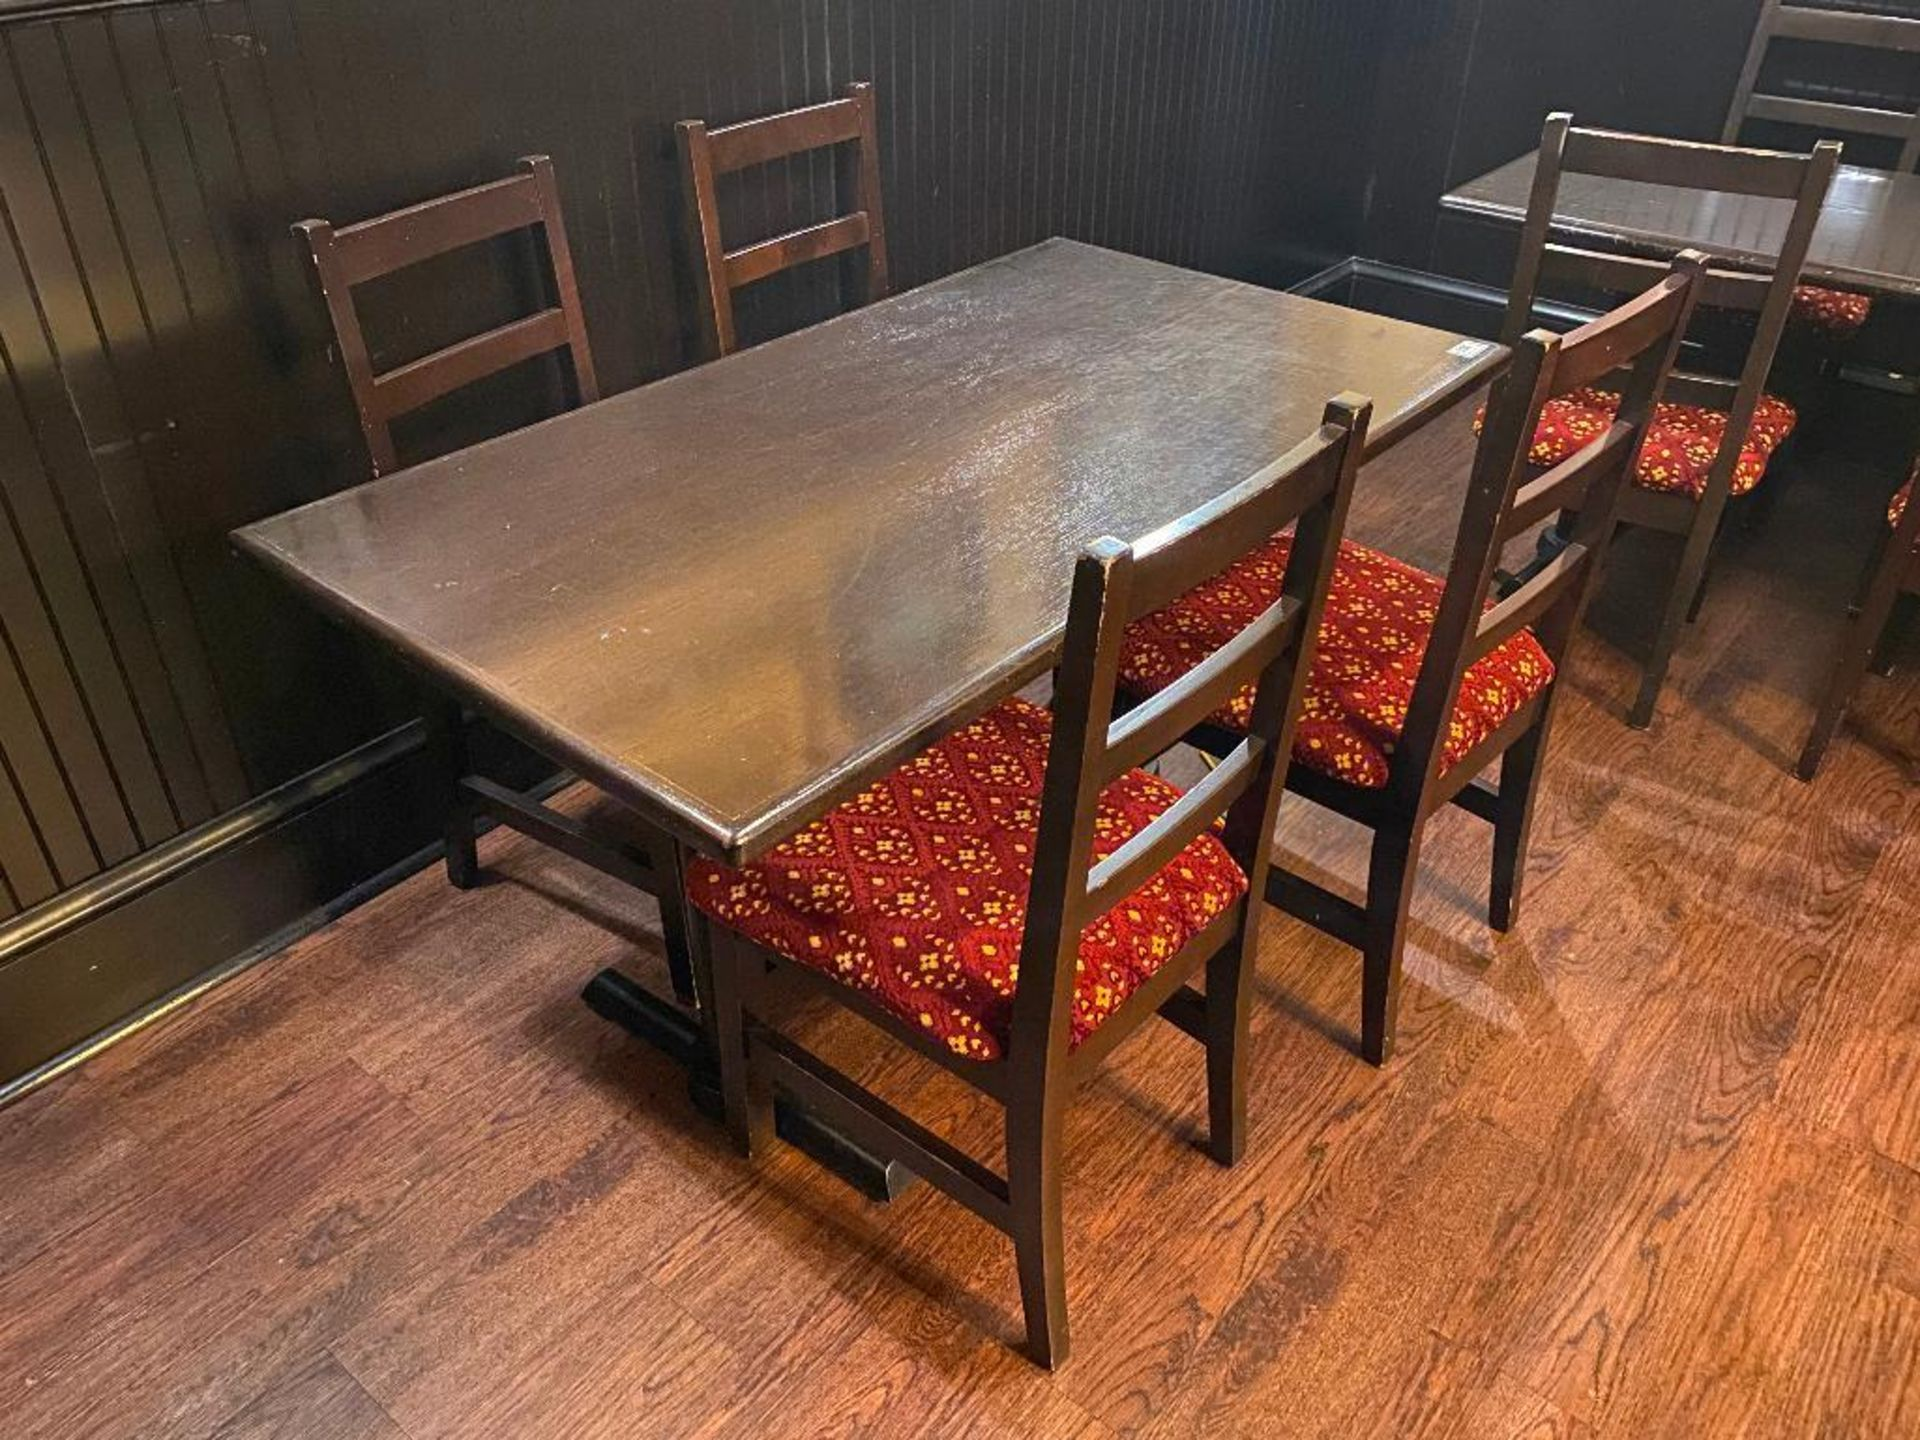 """RECTANGULAR TABLE WITH 4 CHAIRS - 53"""" X 30"""" X 30"""" - Image 2 of 2"""